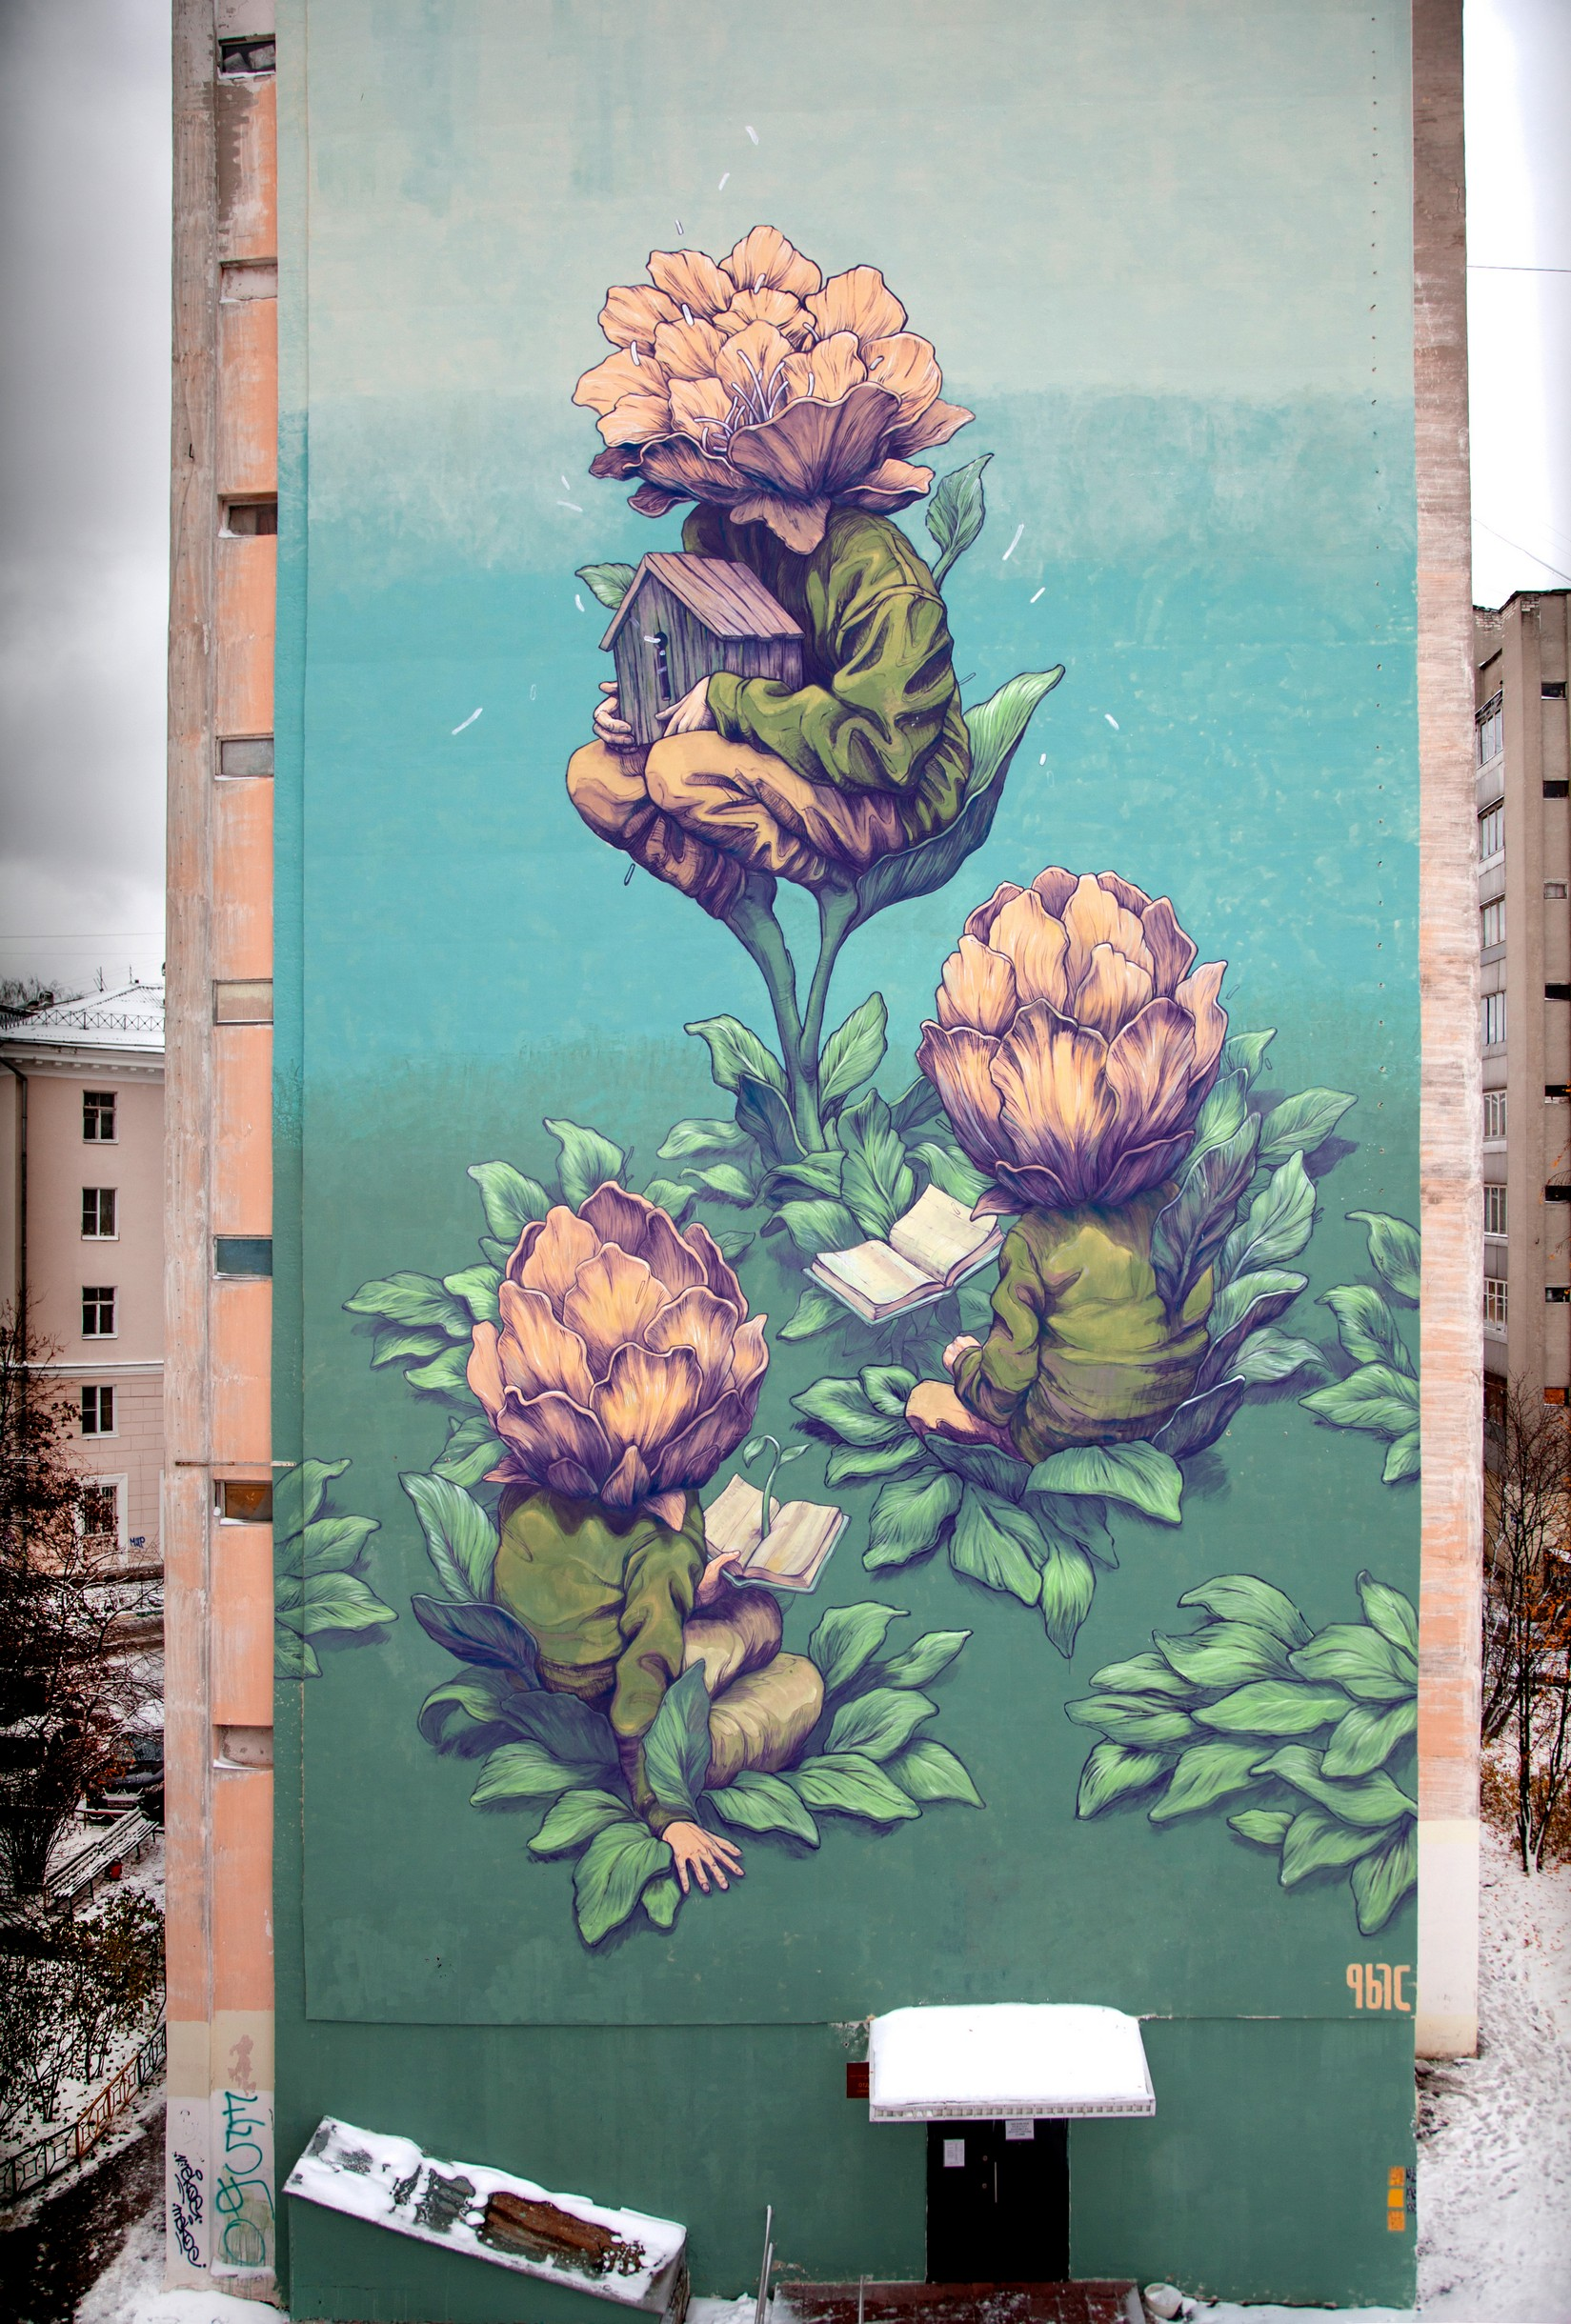 fresque murale street art rustam qbic 01 la boite verte. Black Bedroom Furniture Sets. Home Design Ideas